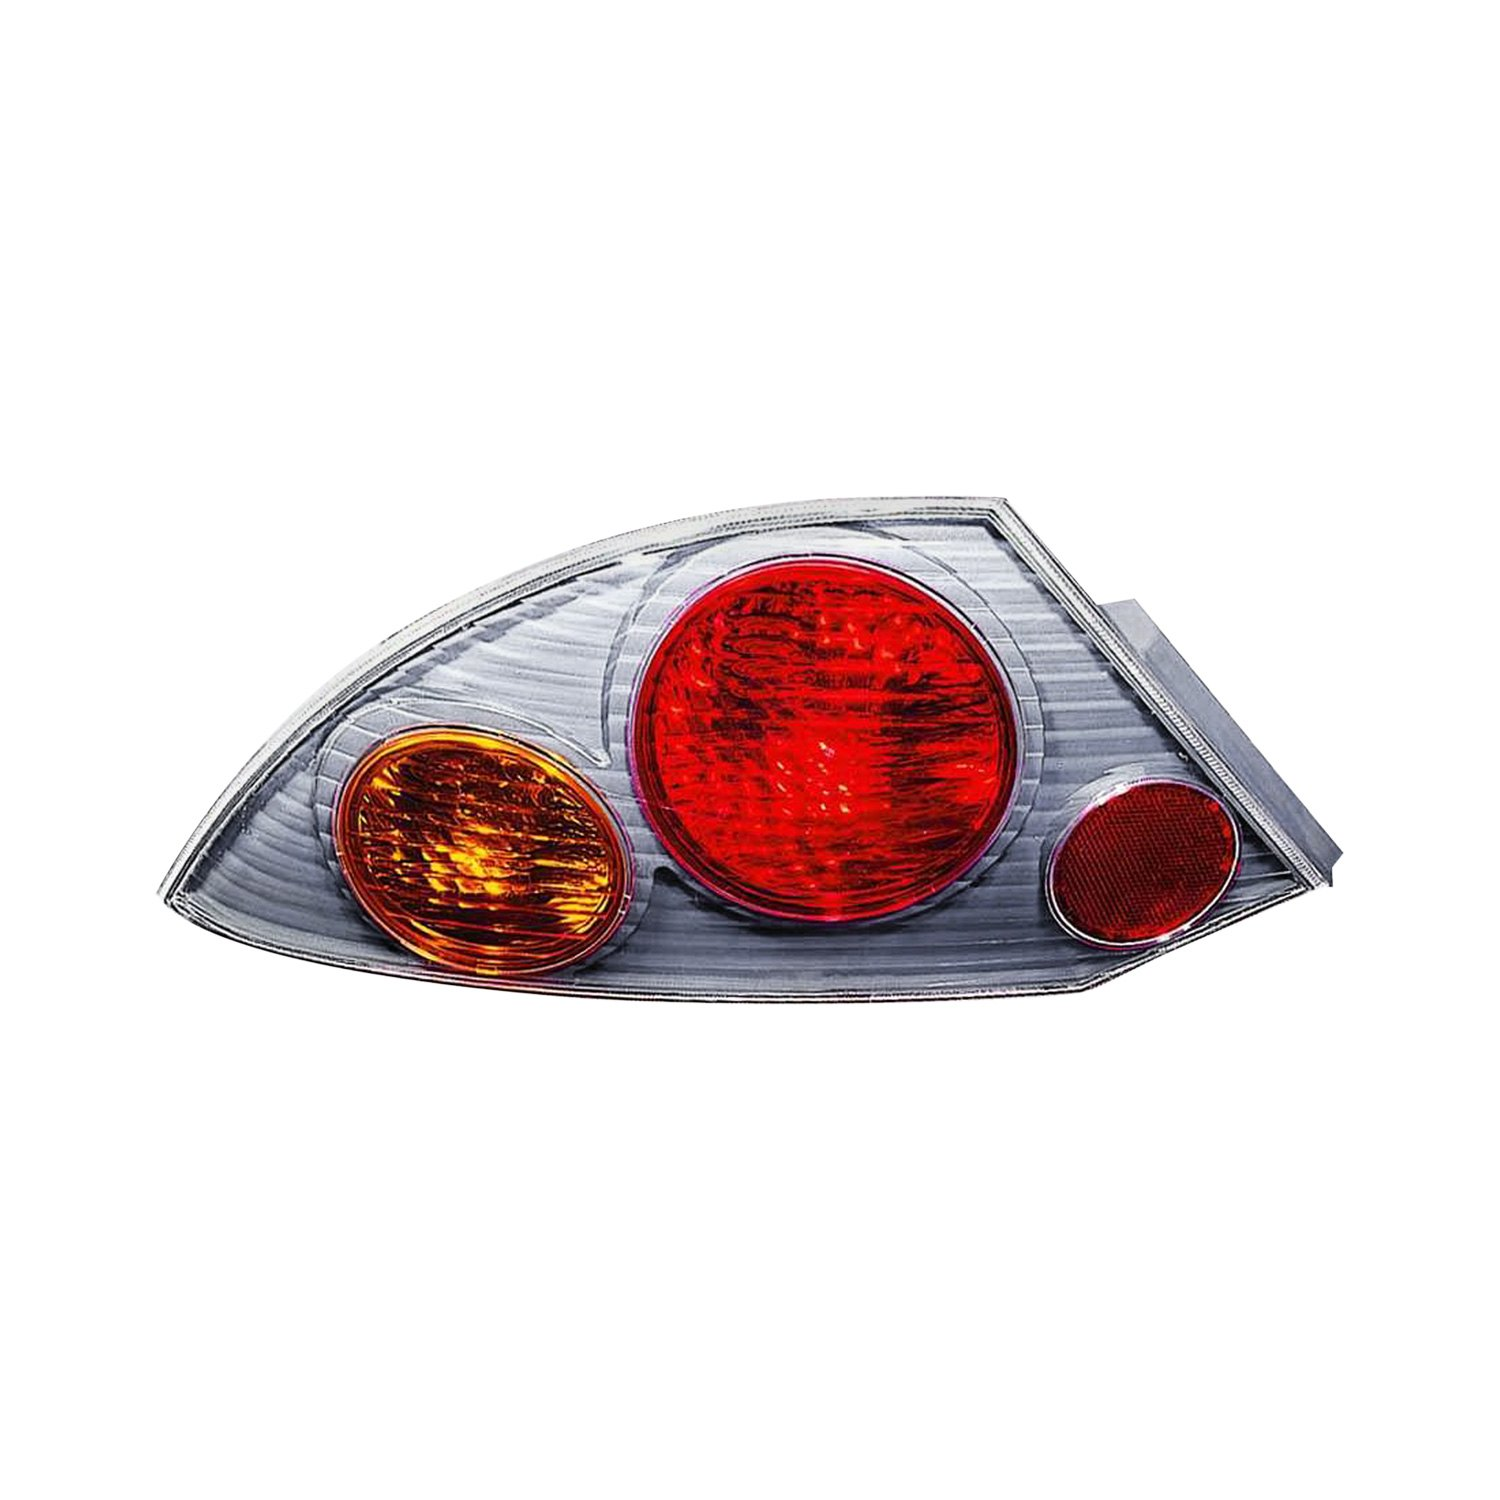 Replace mitsubishi eclipse manufactured from february 2003 2004 replacement tail light for 2003 mitsubishi eclipse interior lights